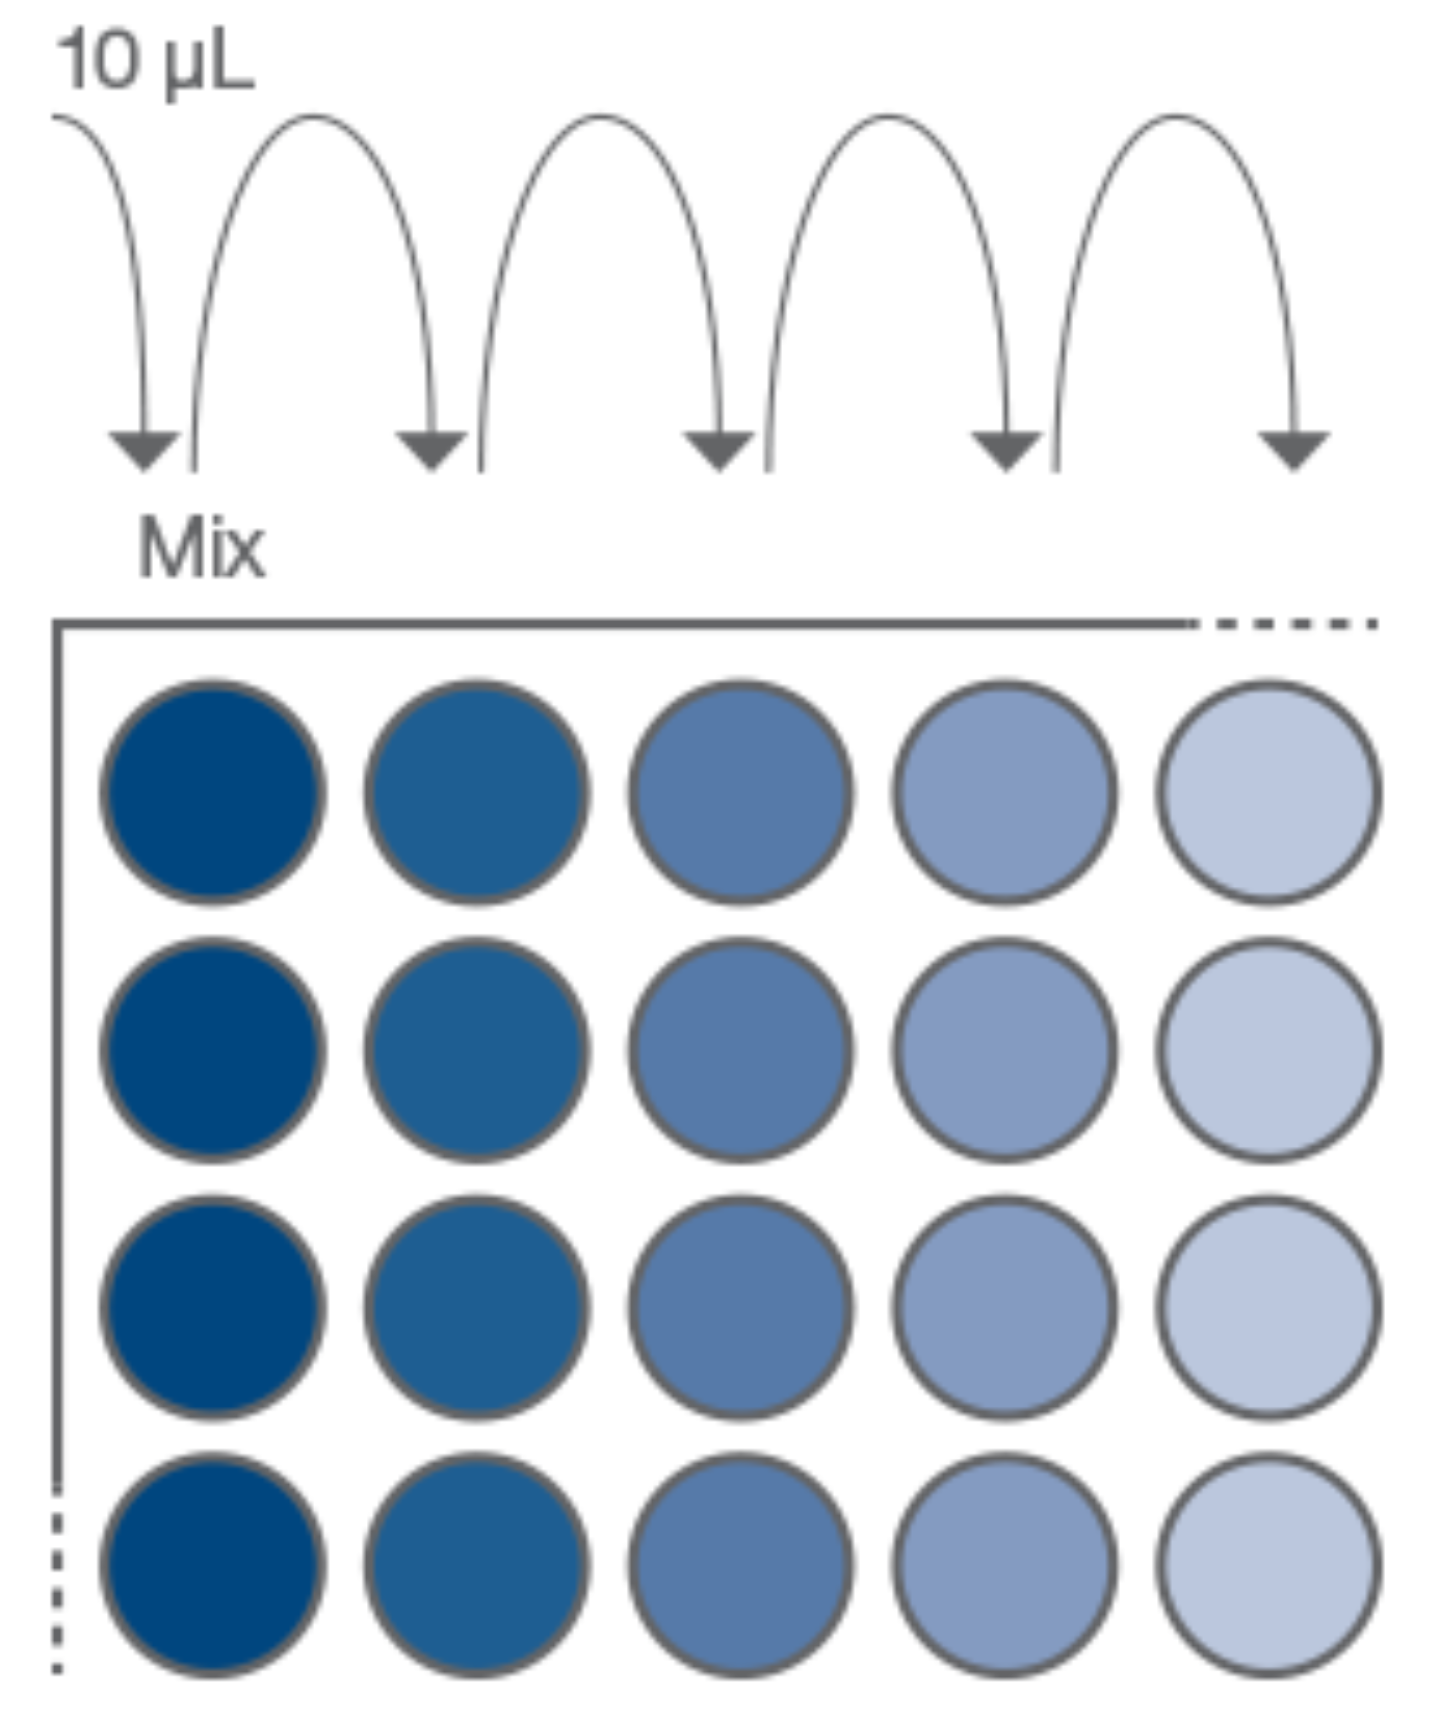 Best practice for serial dilution graphic of sample dilution by factor of 10